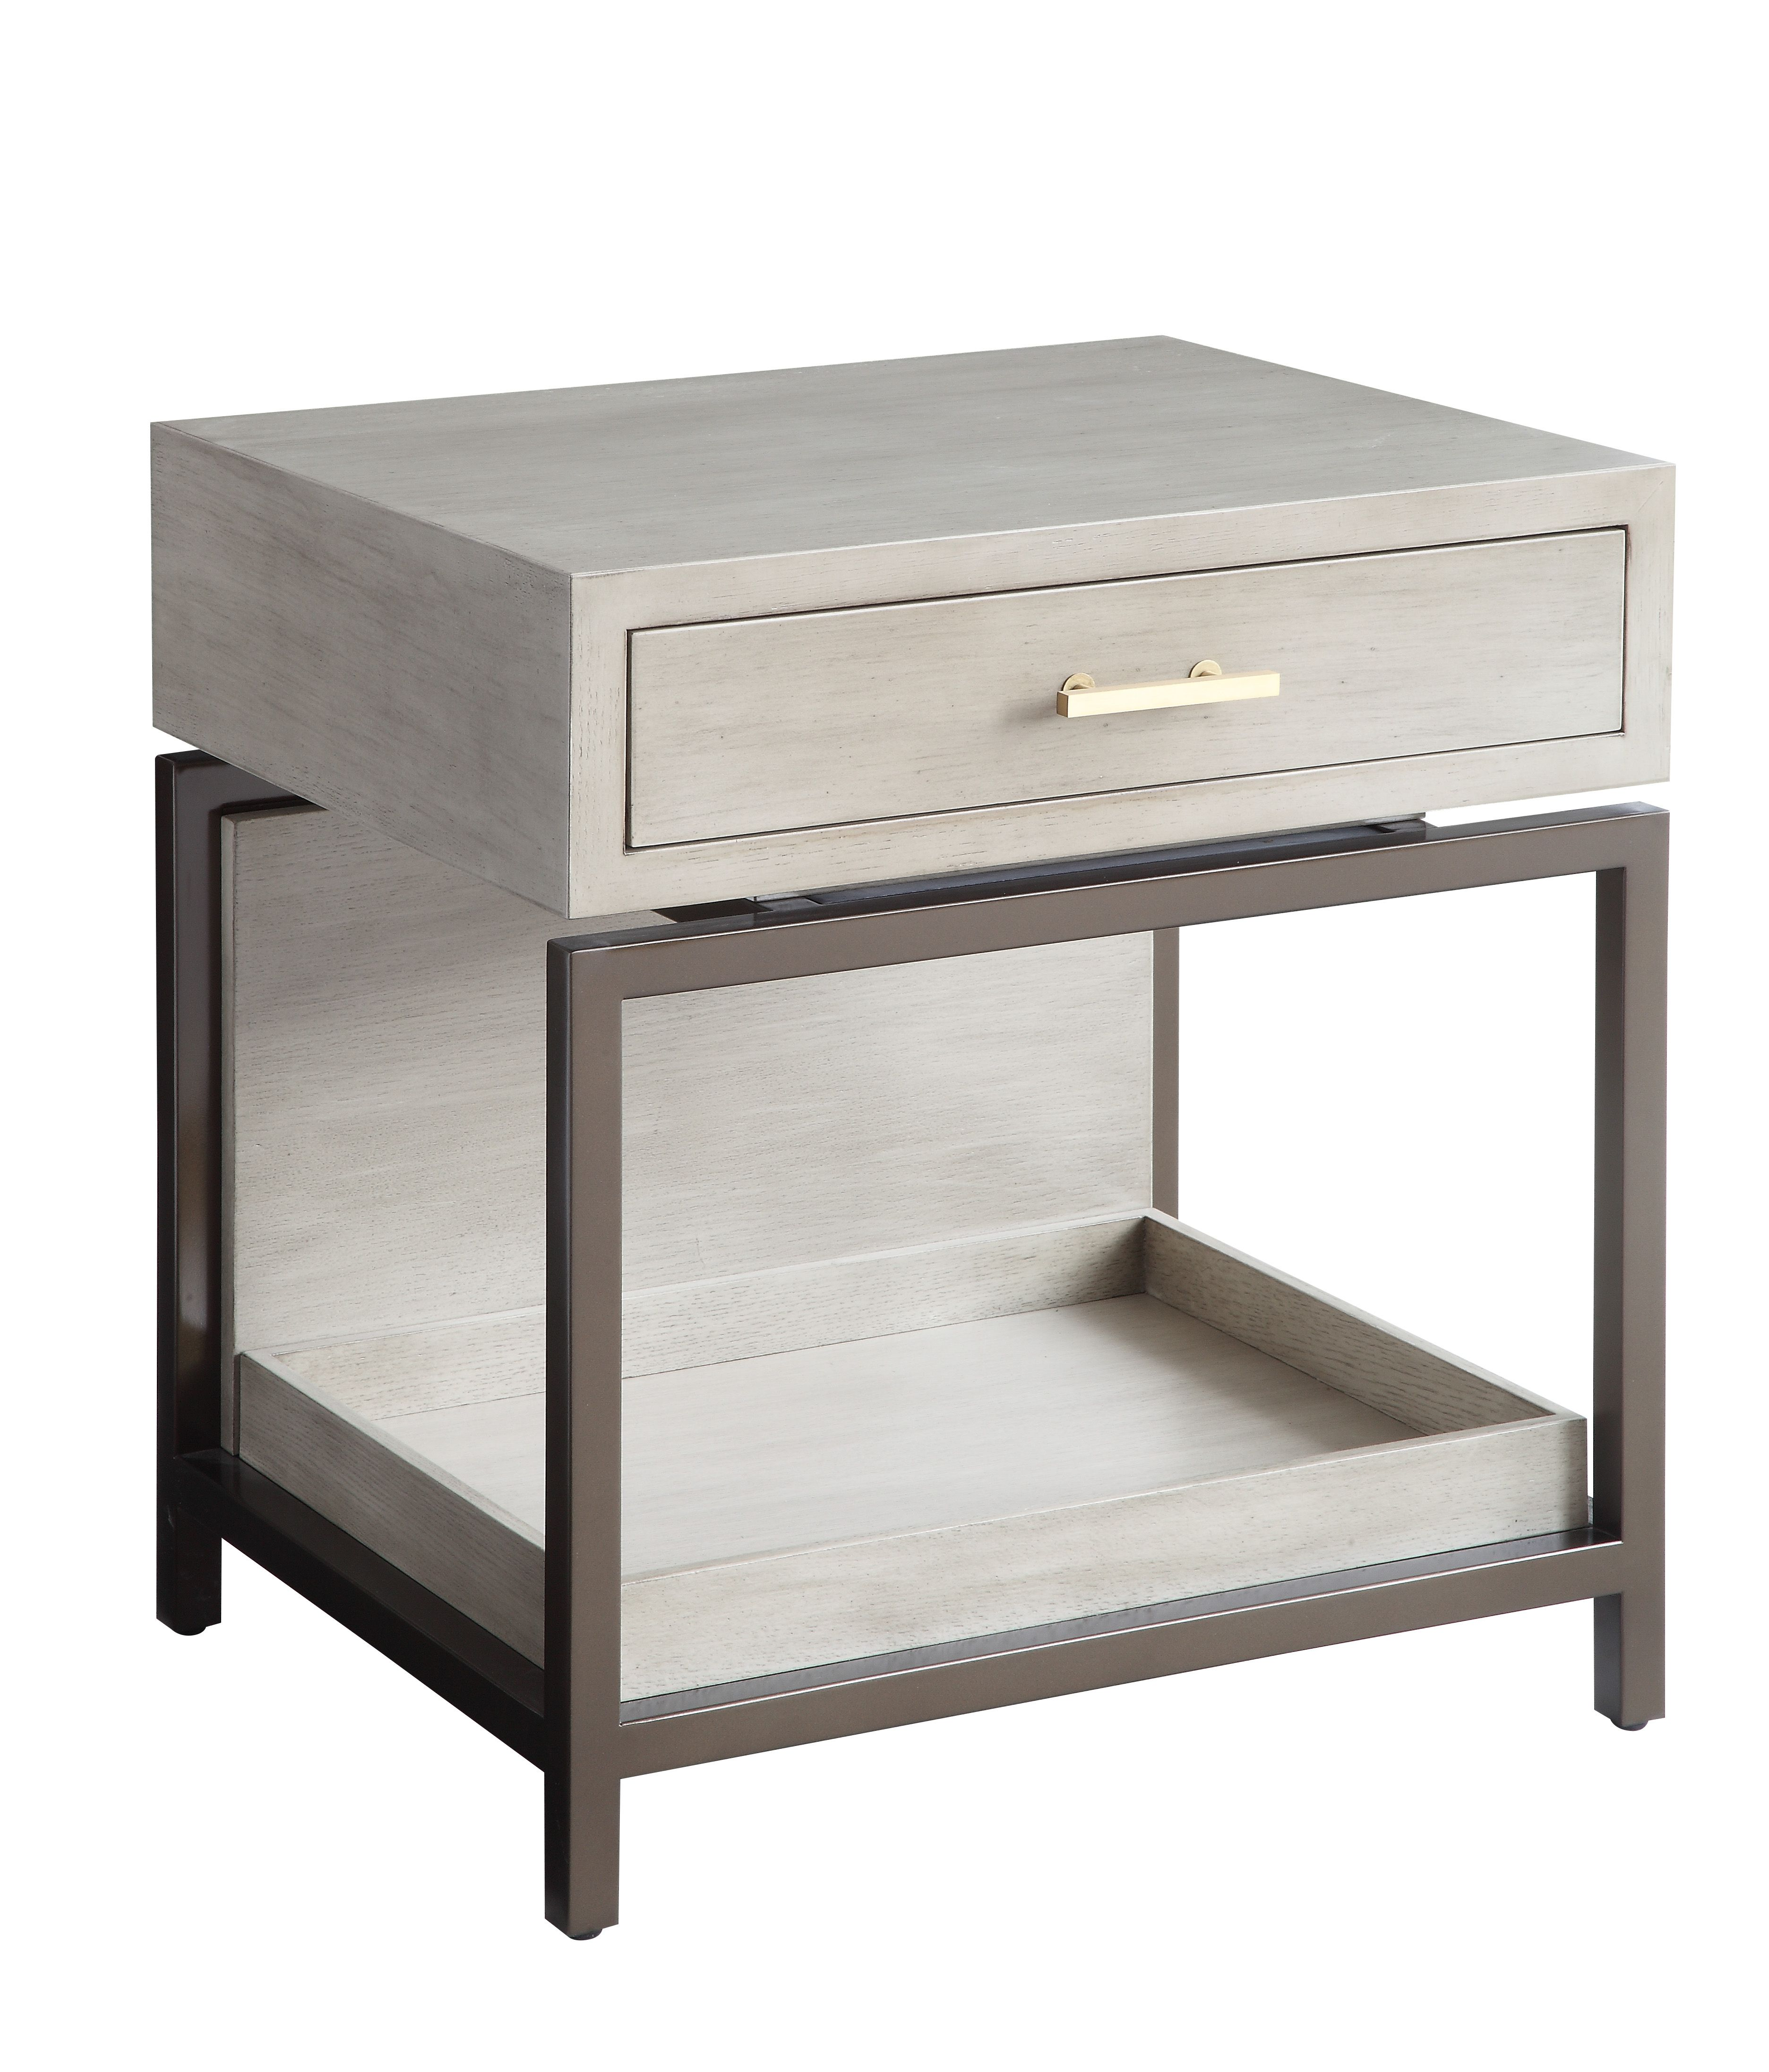 8479 | chuang床头柜 | Modern bedside table, Bedroom night ...